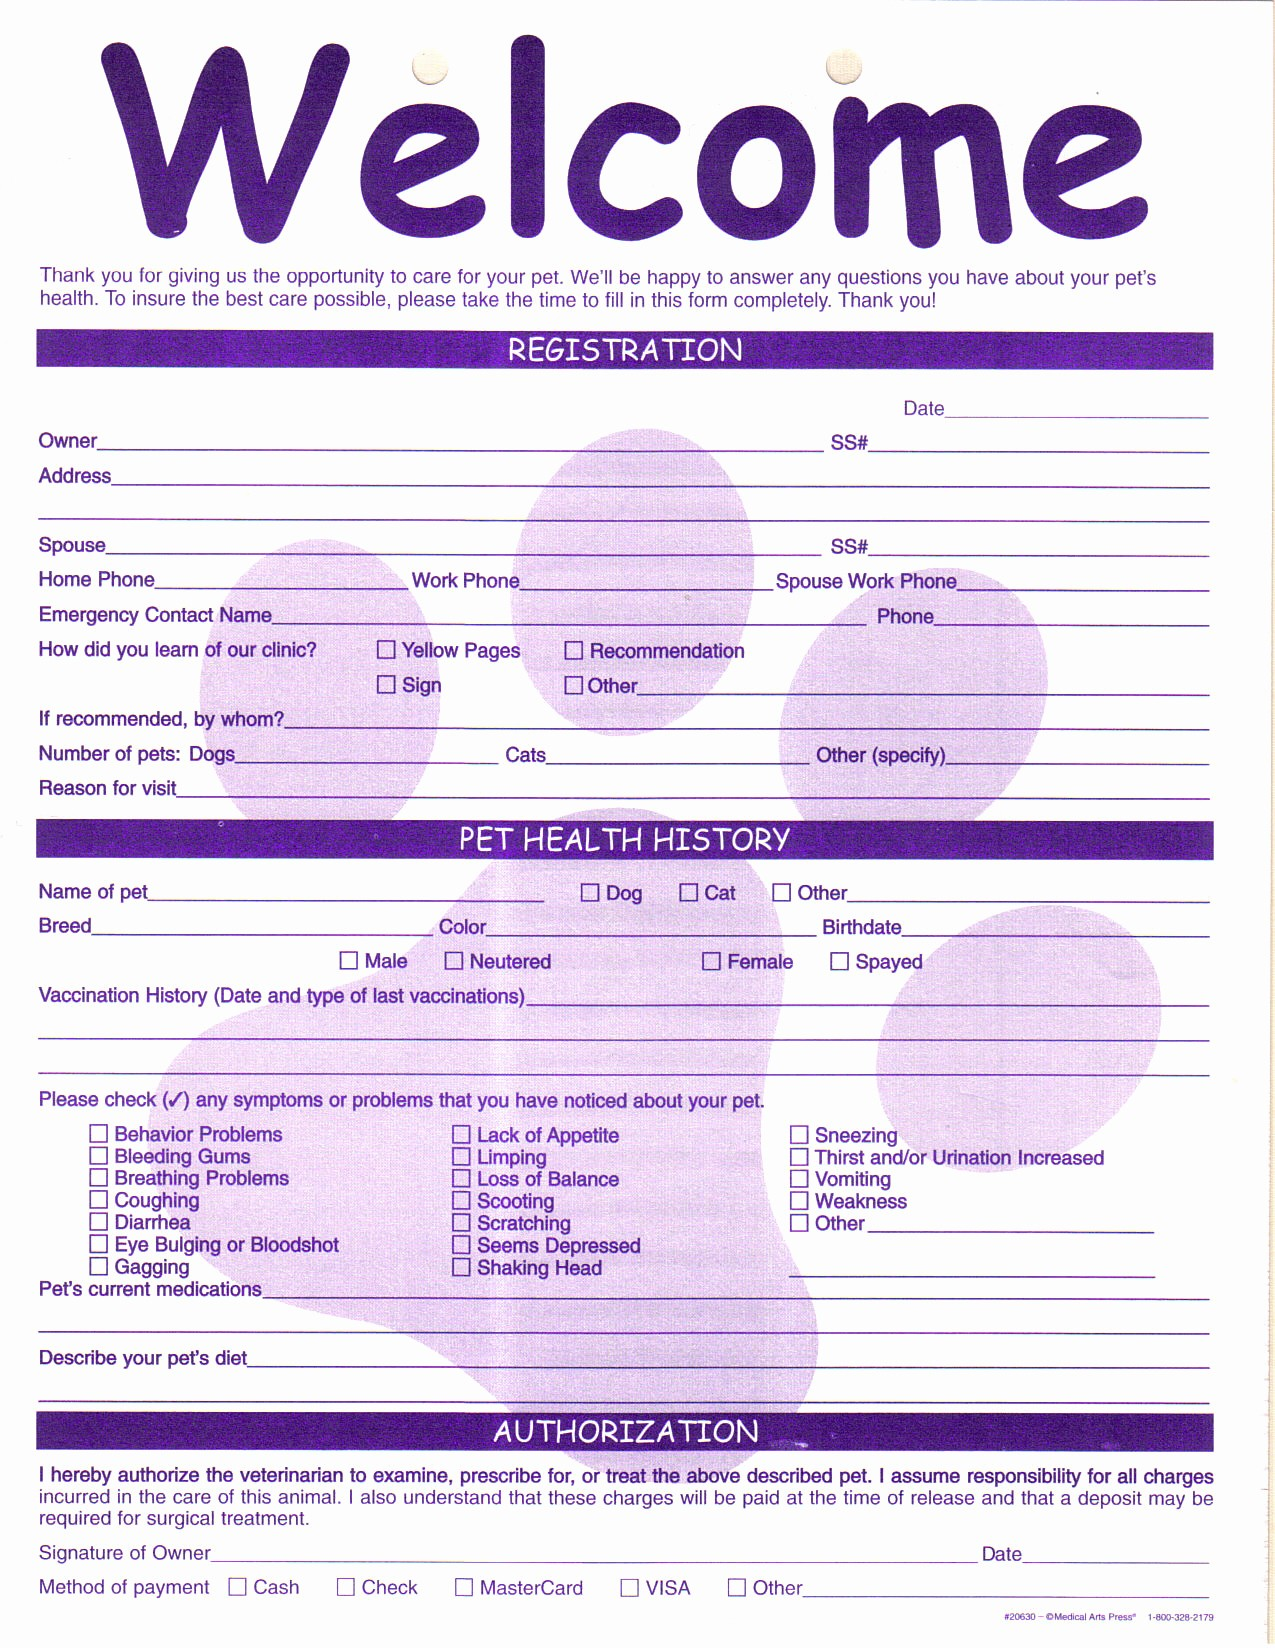 Pet Sitting Client Information form Lovely Index Of Cdn 14 1997 248